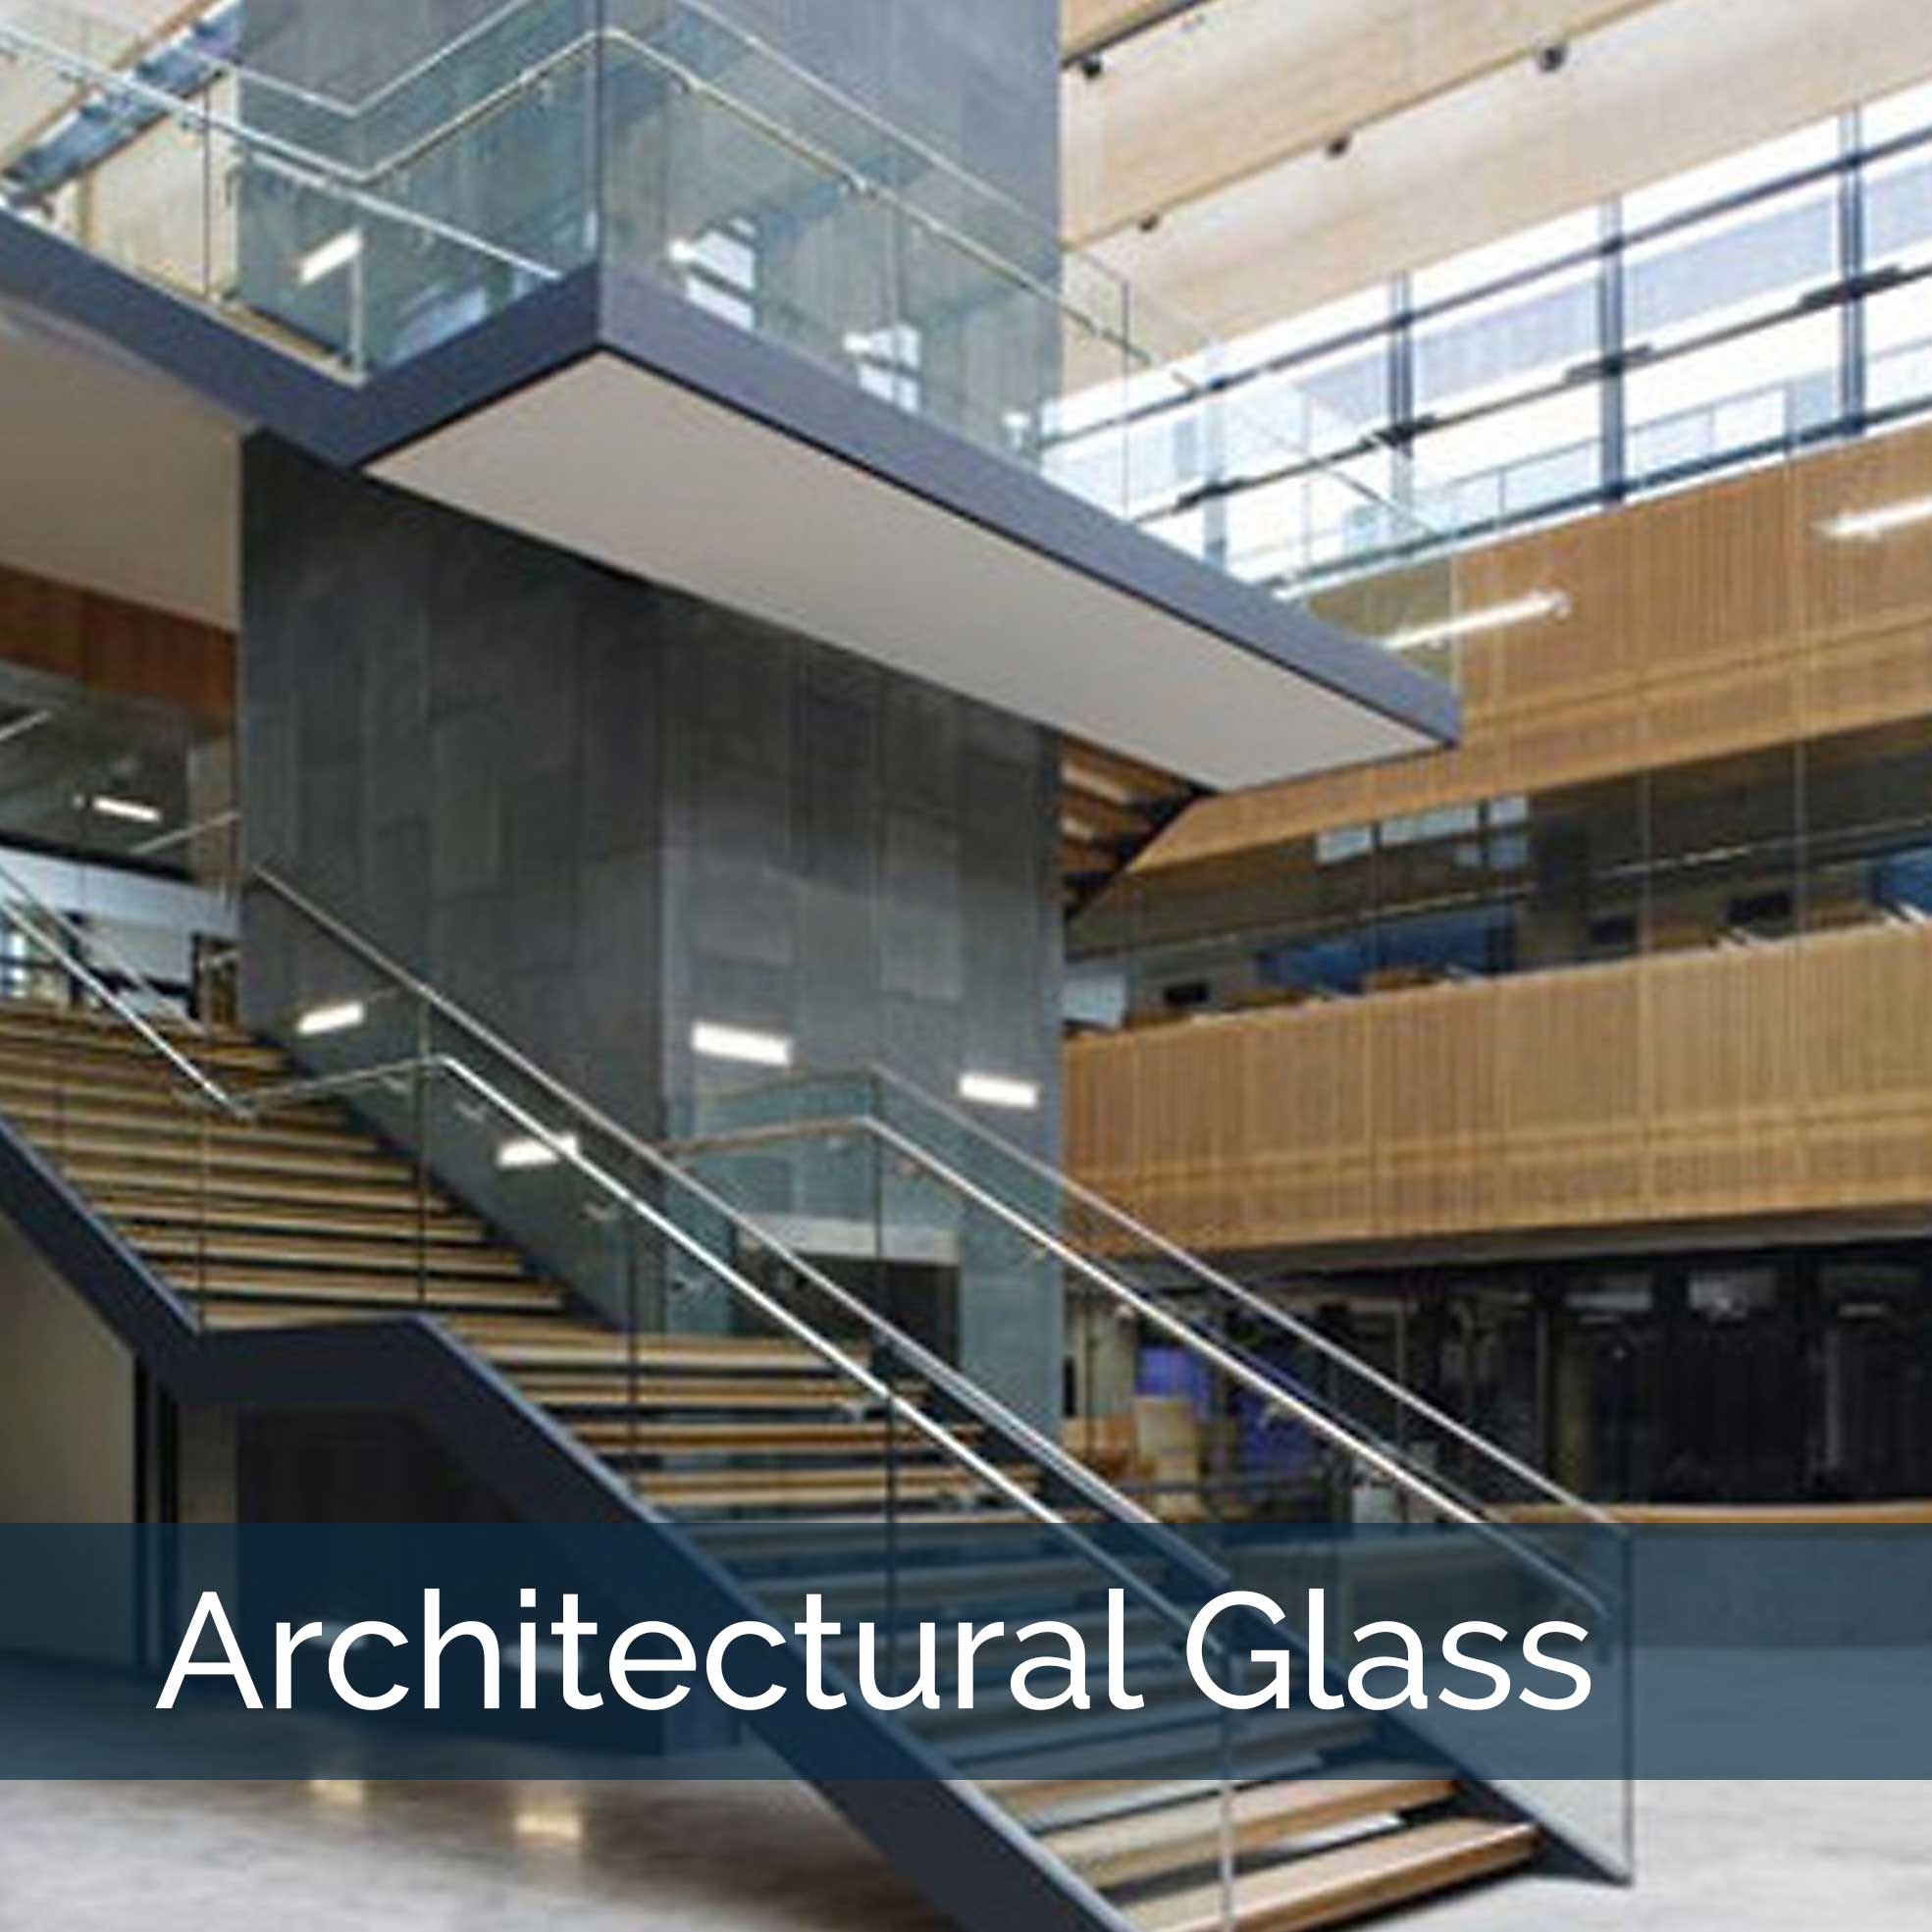 allied workspace atrium glazing office fitout, architectural glass